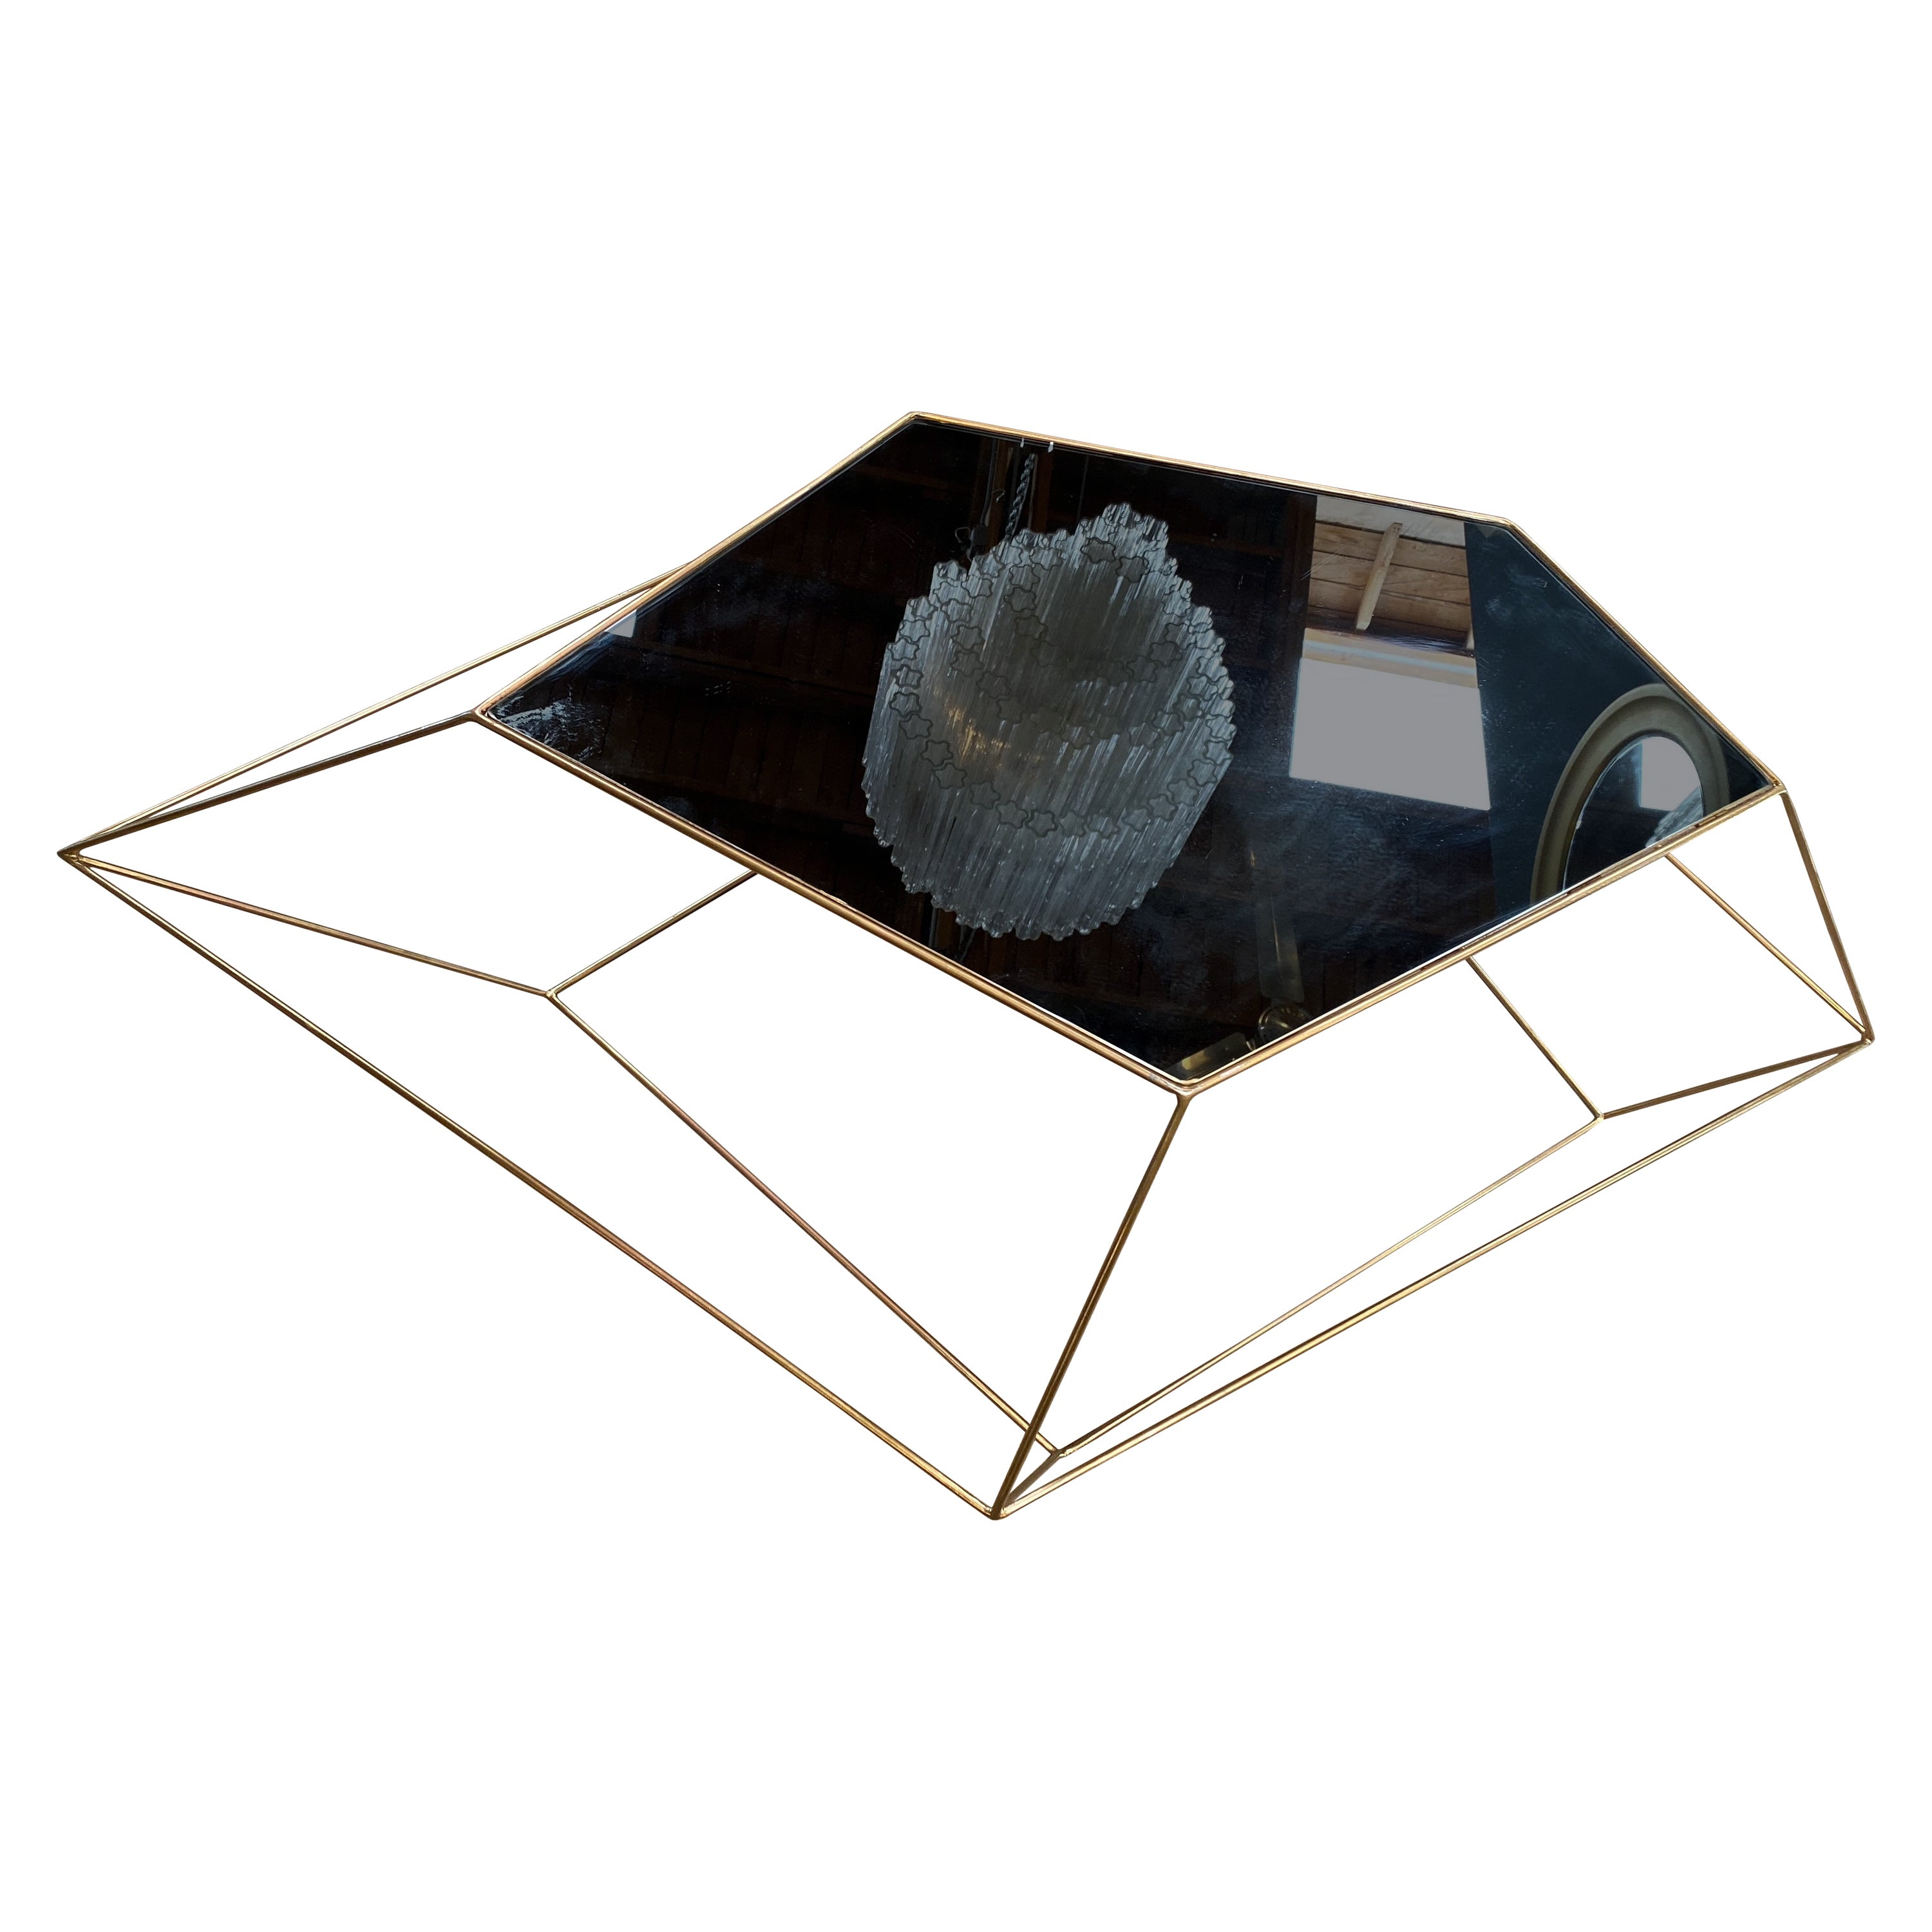 Italian Rhomboidal Sculptural Brass and Glass Coffee Table Italy 1970s